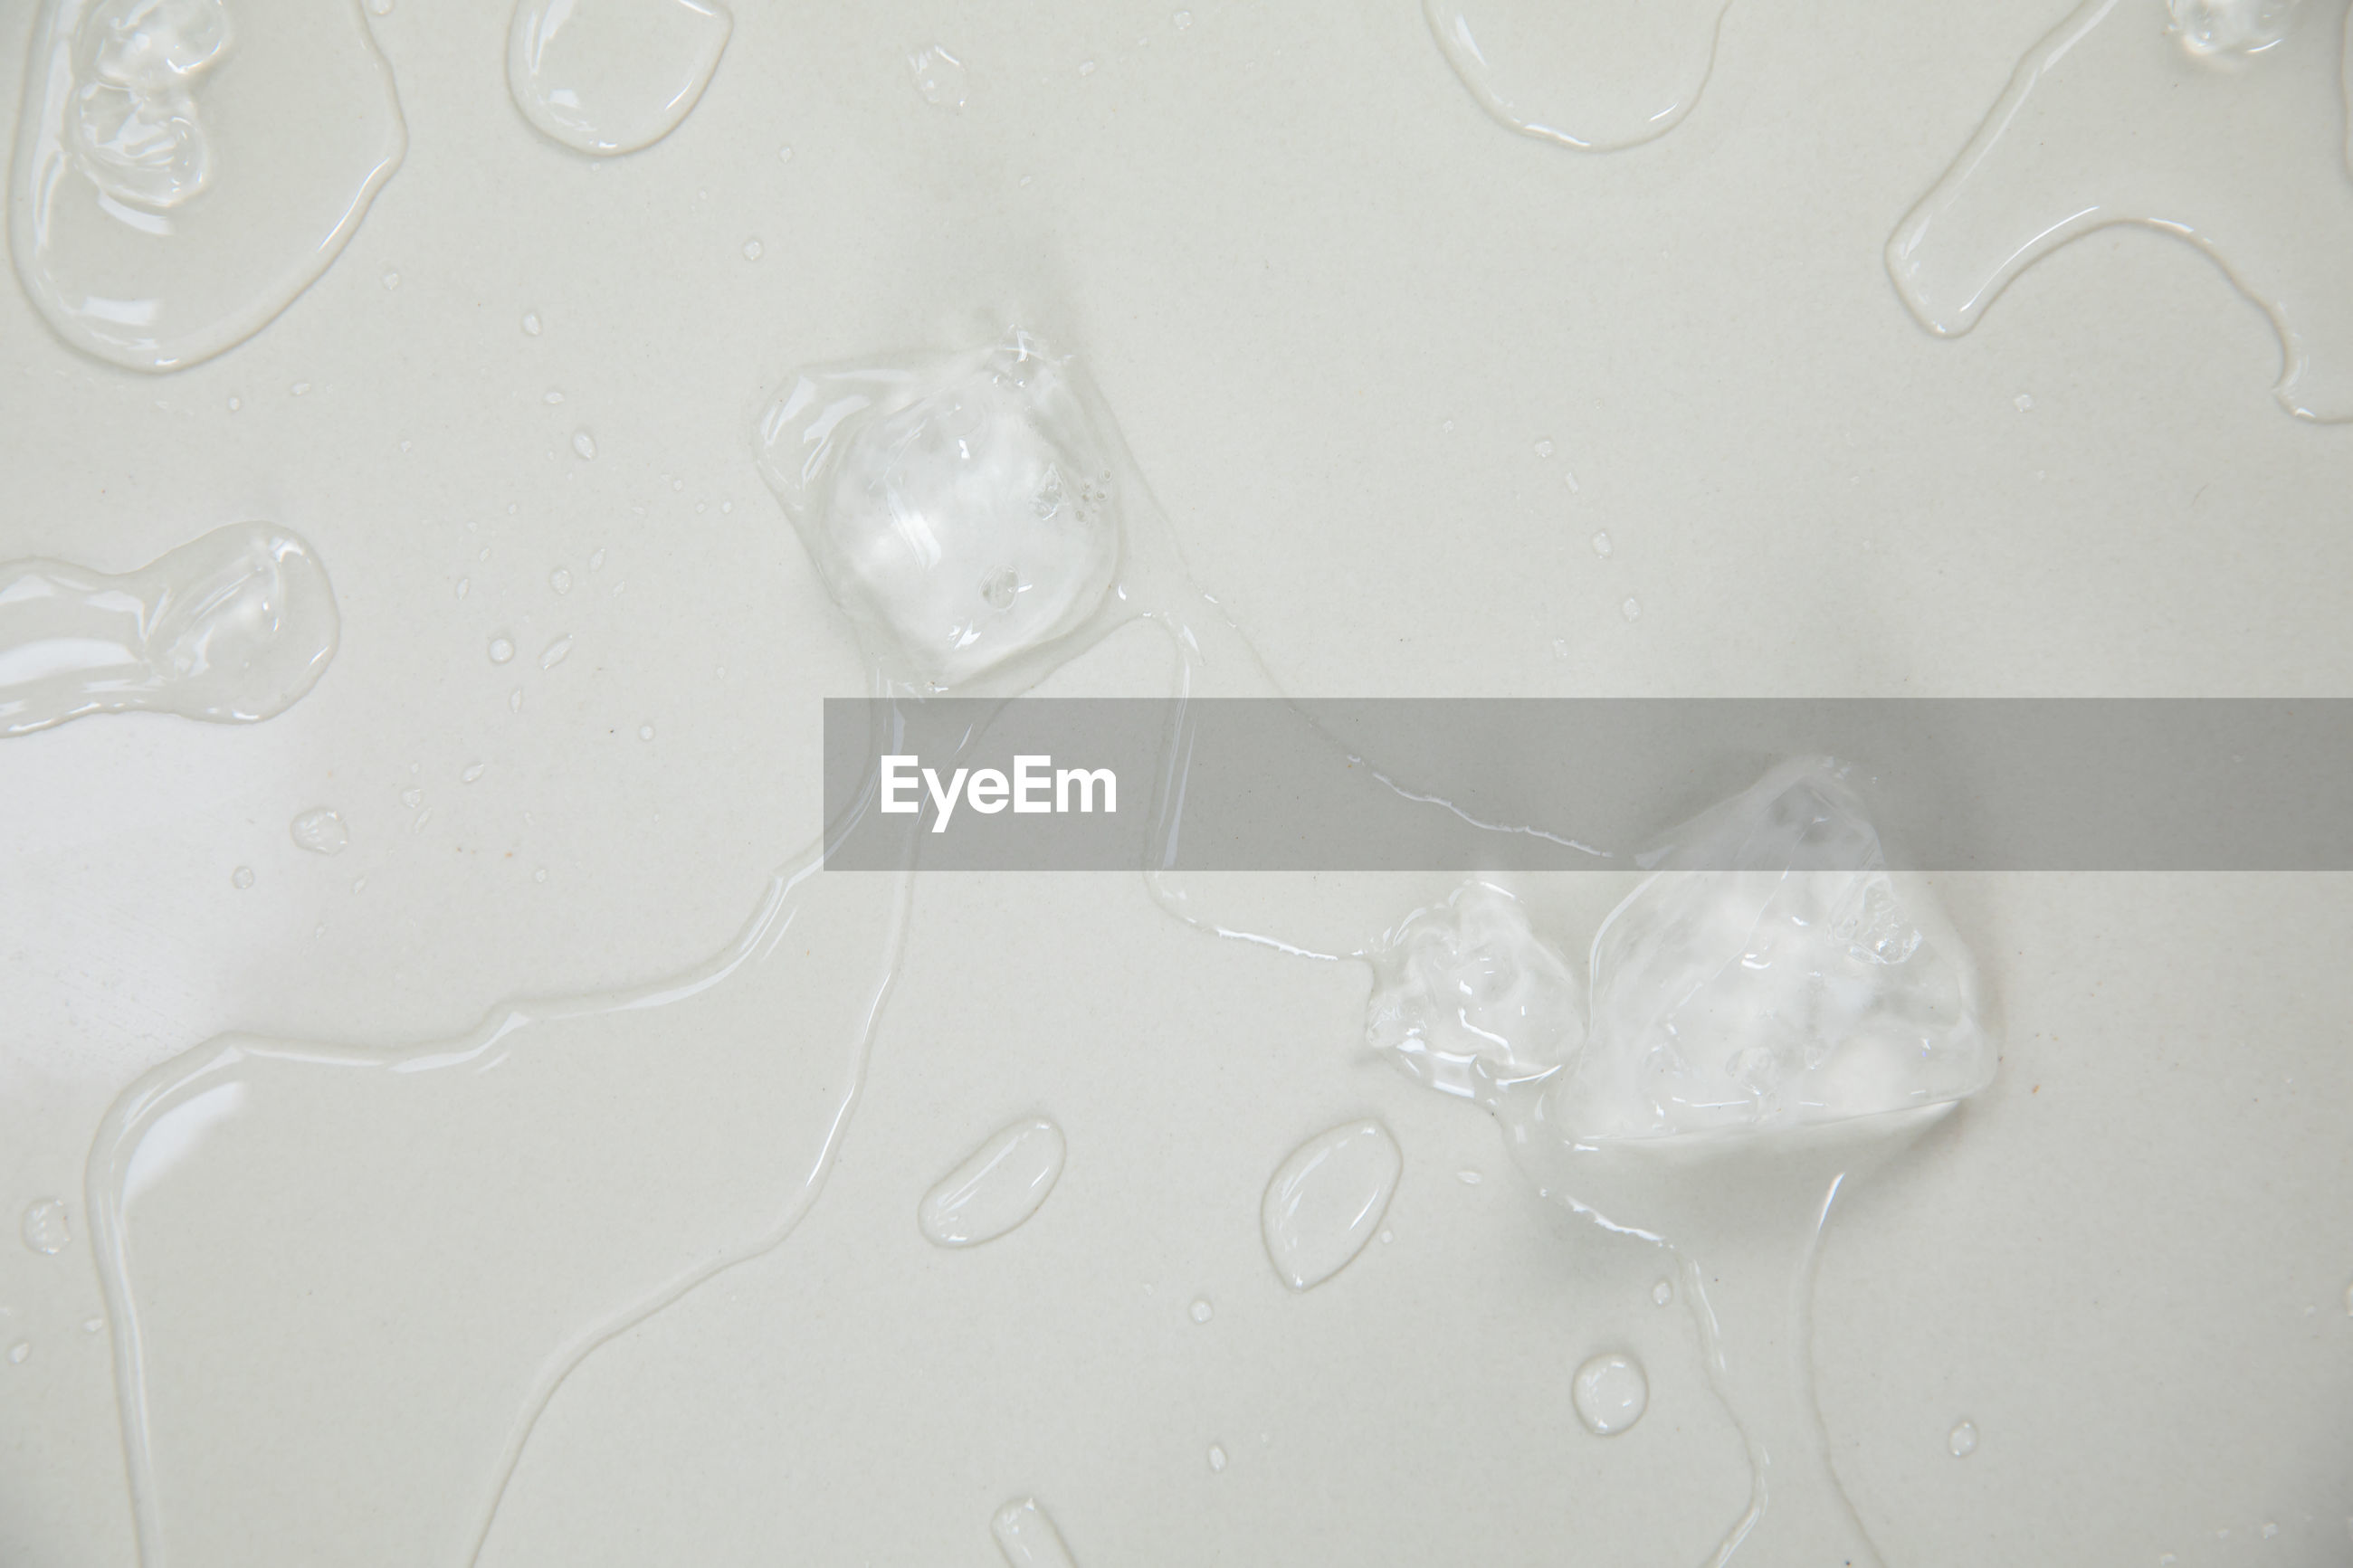 HIGH ANGLE VIEW OF WATER DROPS ON WHITE BACKGROUND